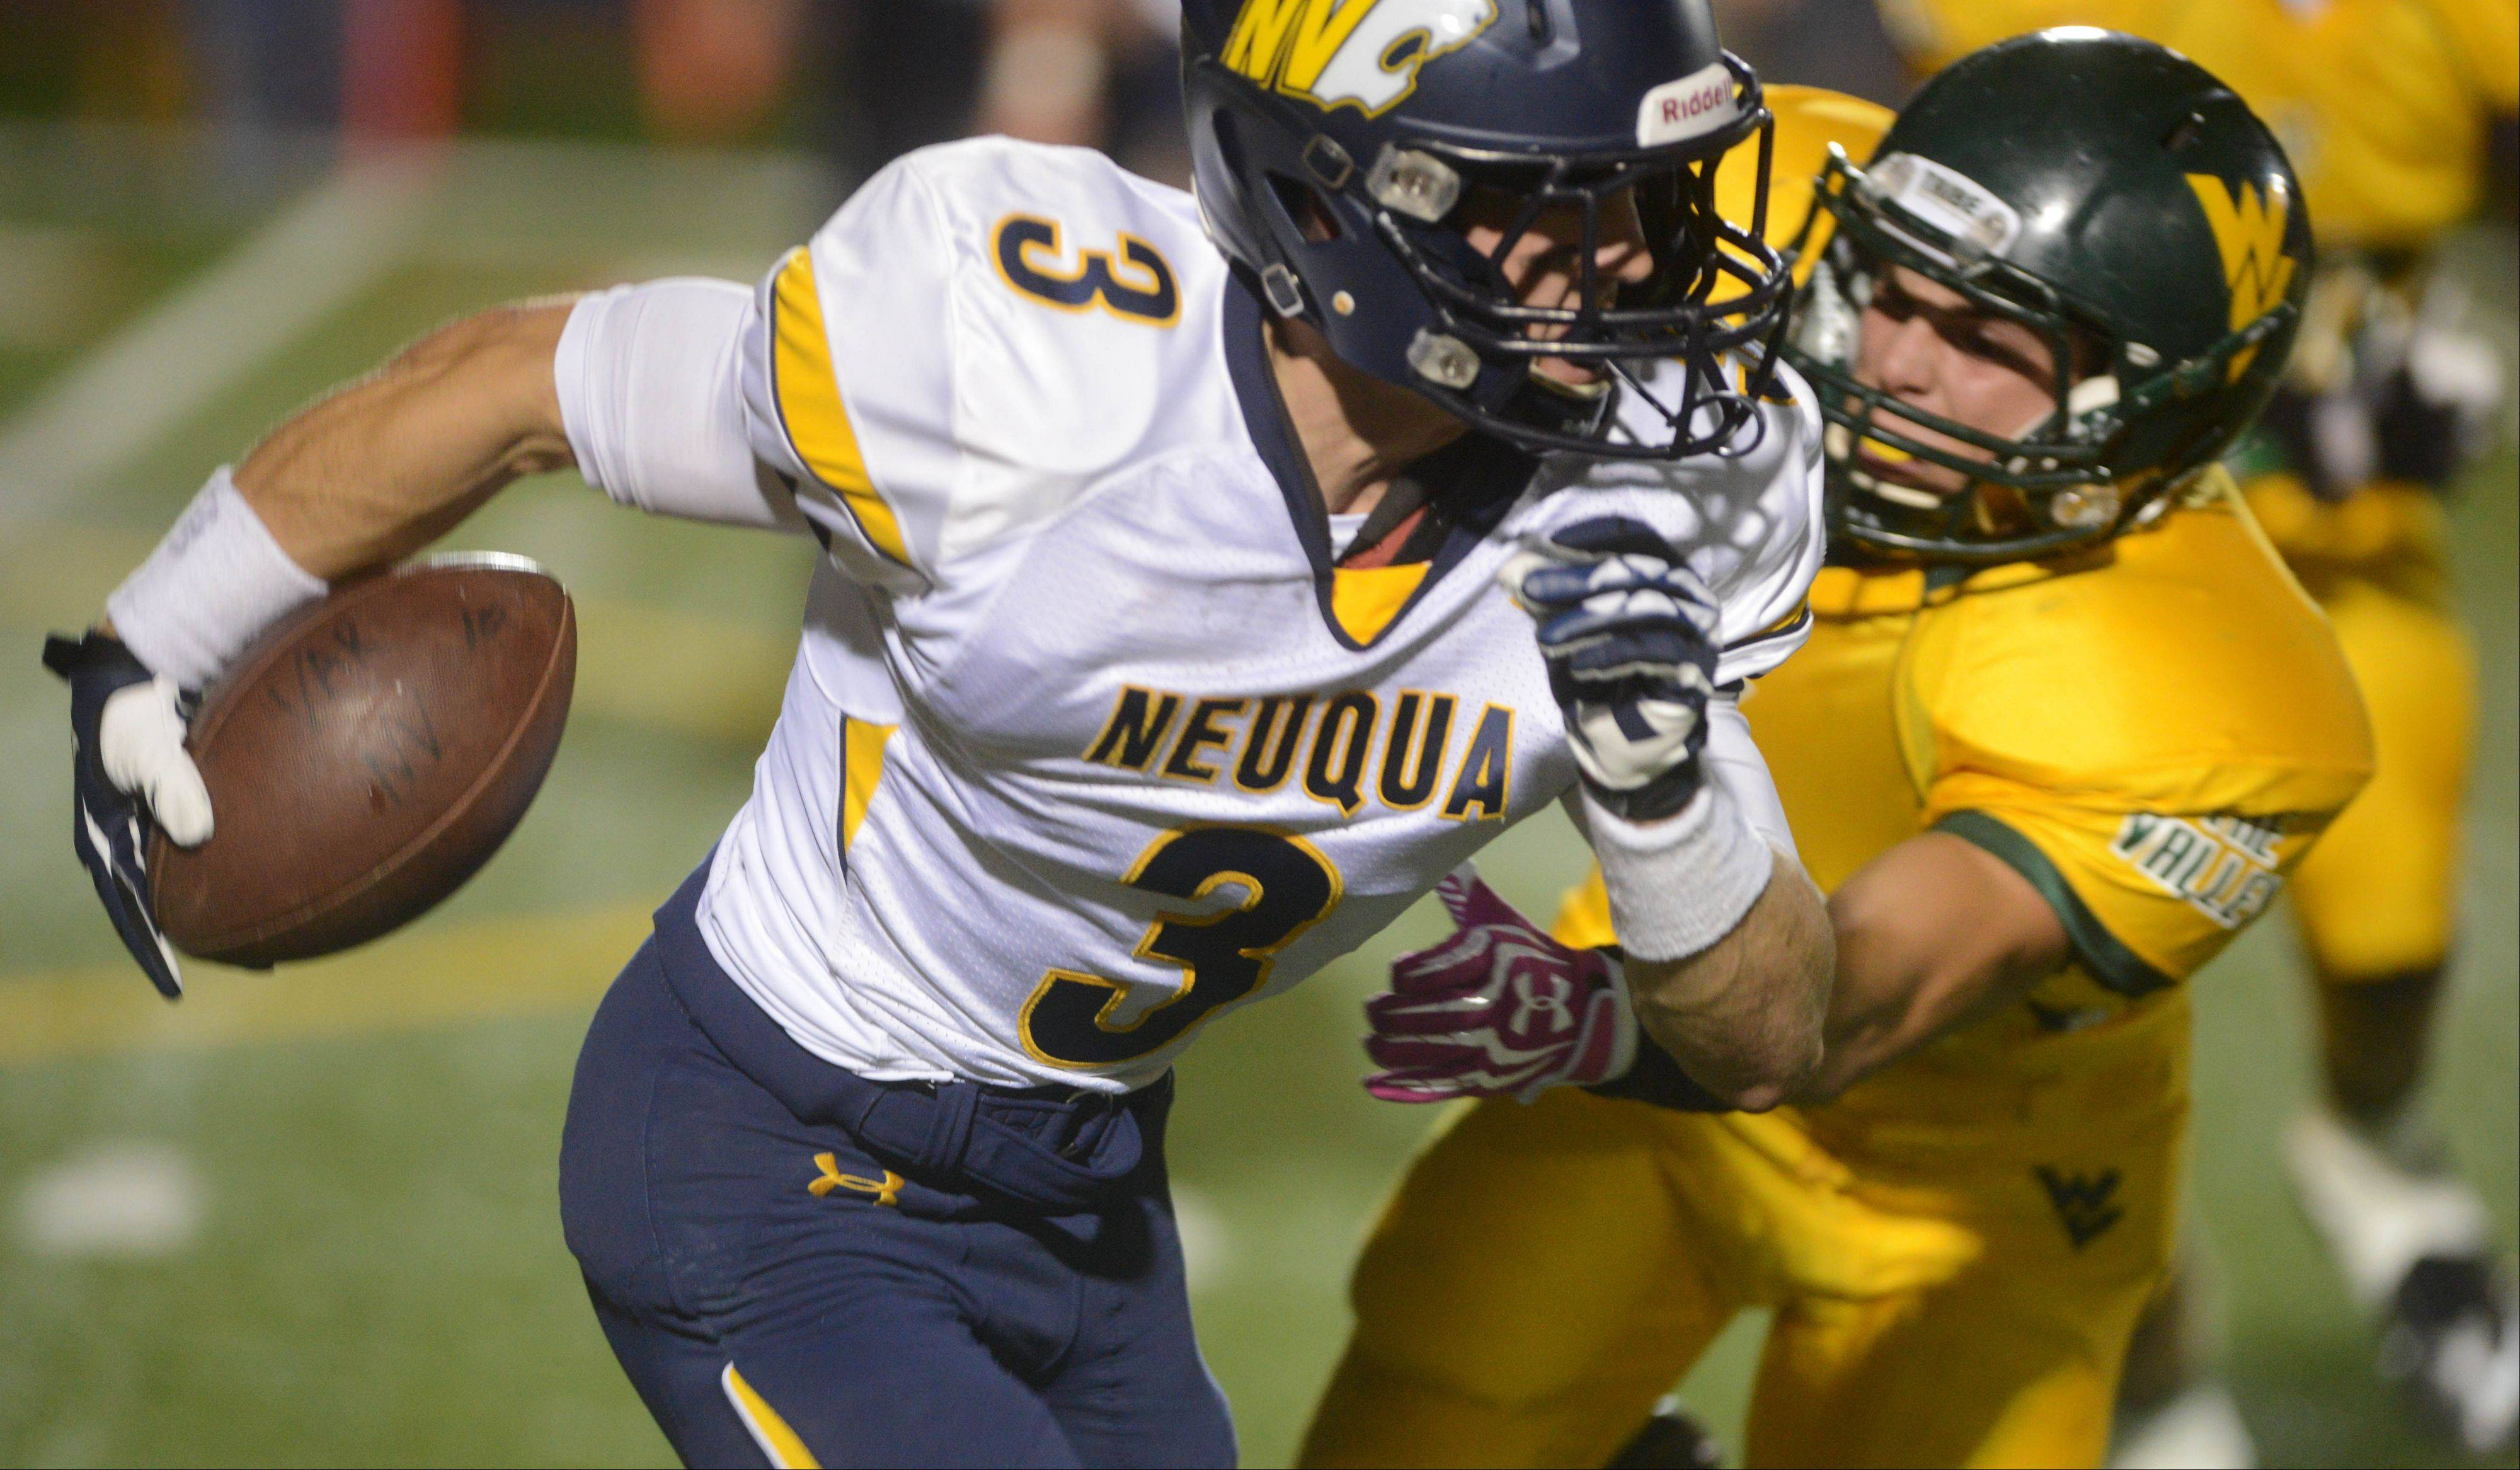 Mikey Dudek of Neuqua Valley runs the ball during the Wildcats� win over Waubonsie Valley at North Central College Friday.